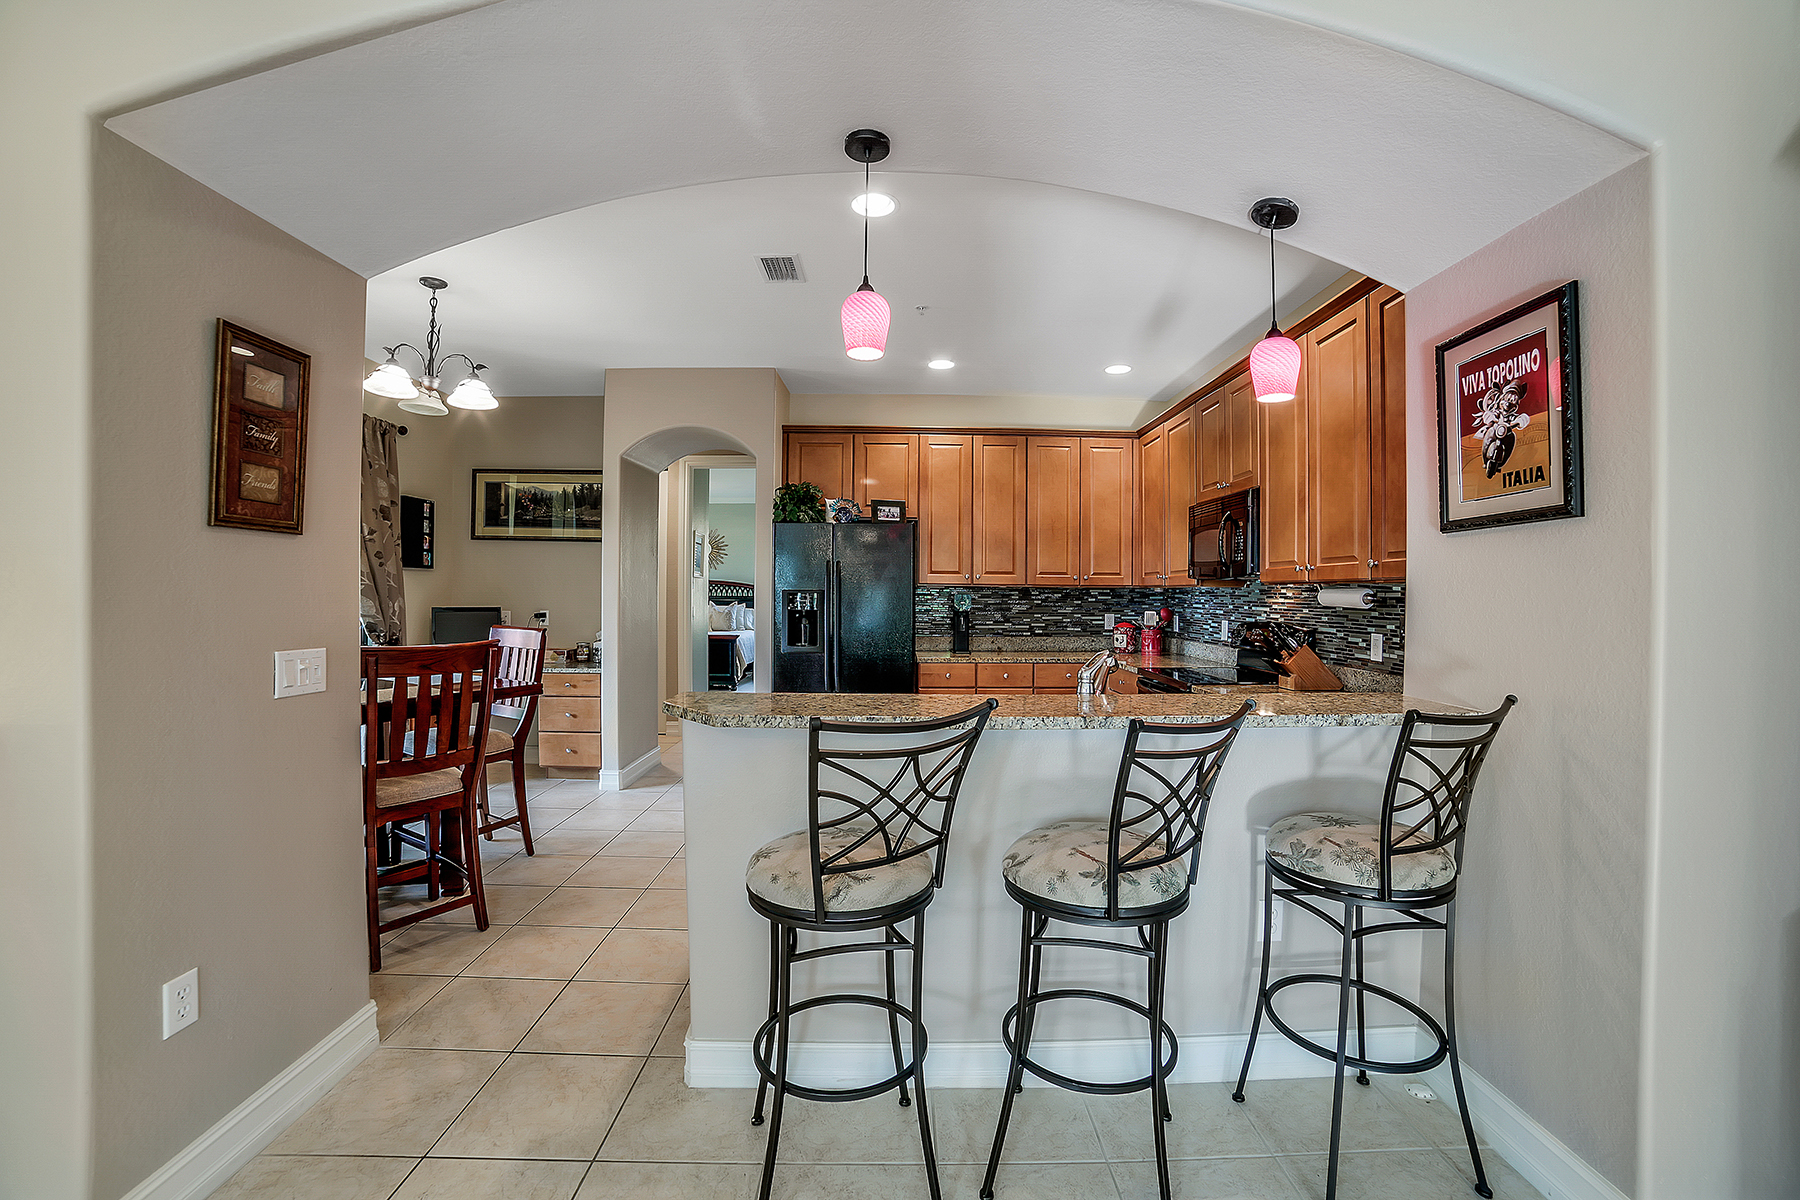 Additional photo for property listing at LELY RESORT - LELY 9132  Delano St 9101,  Naples, Florida 34113 United States